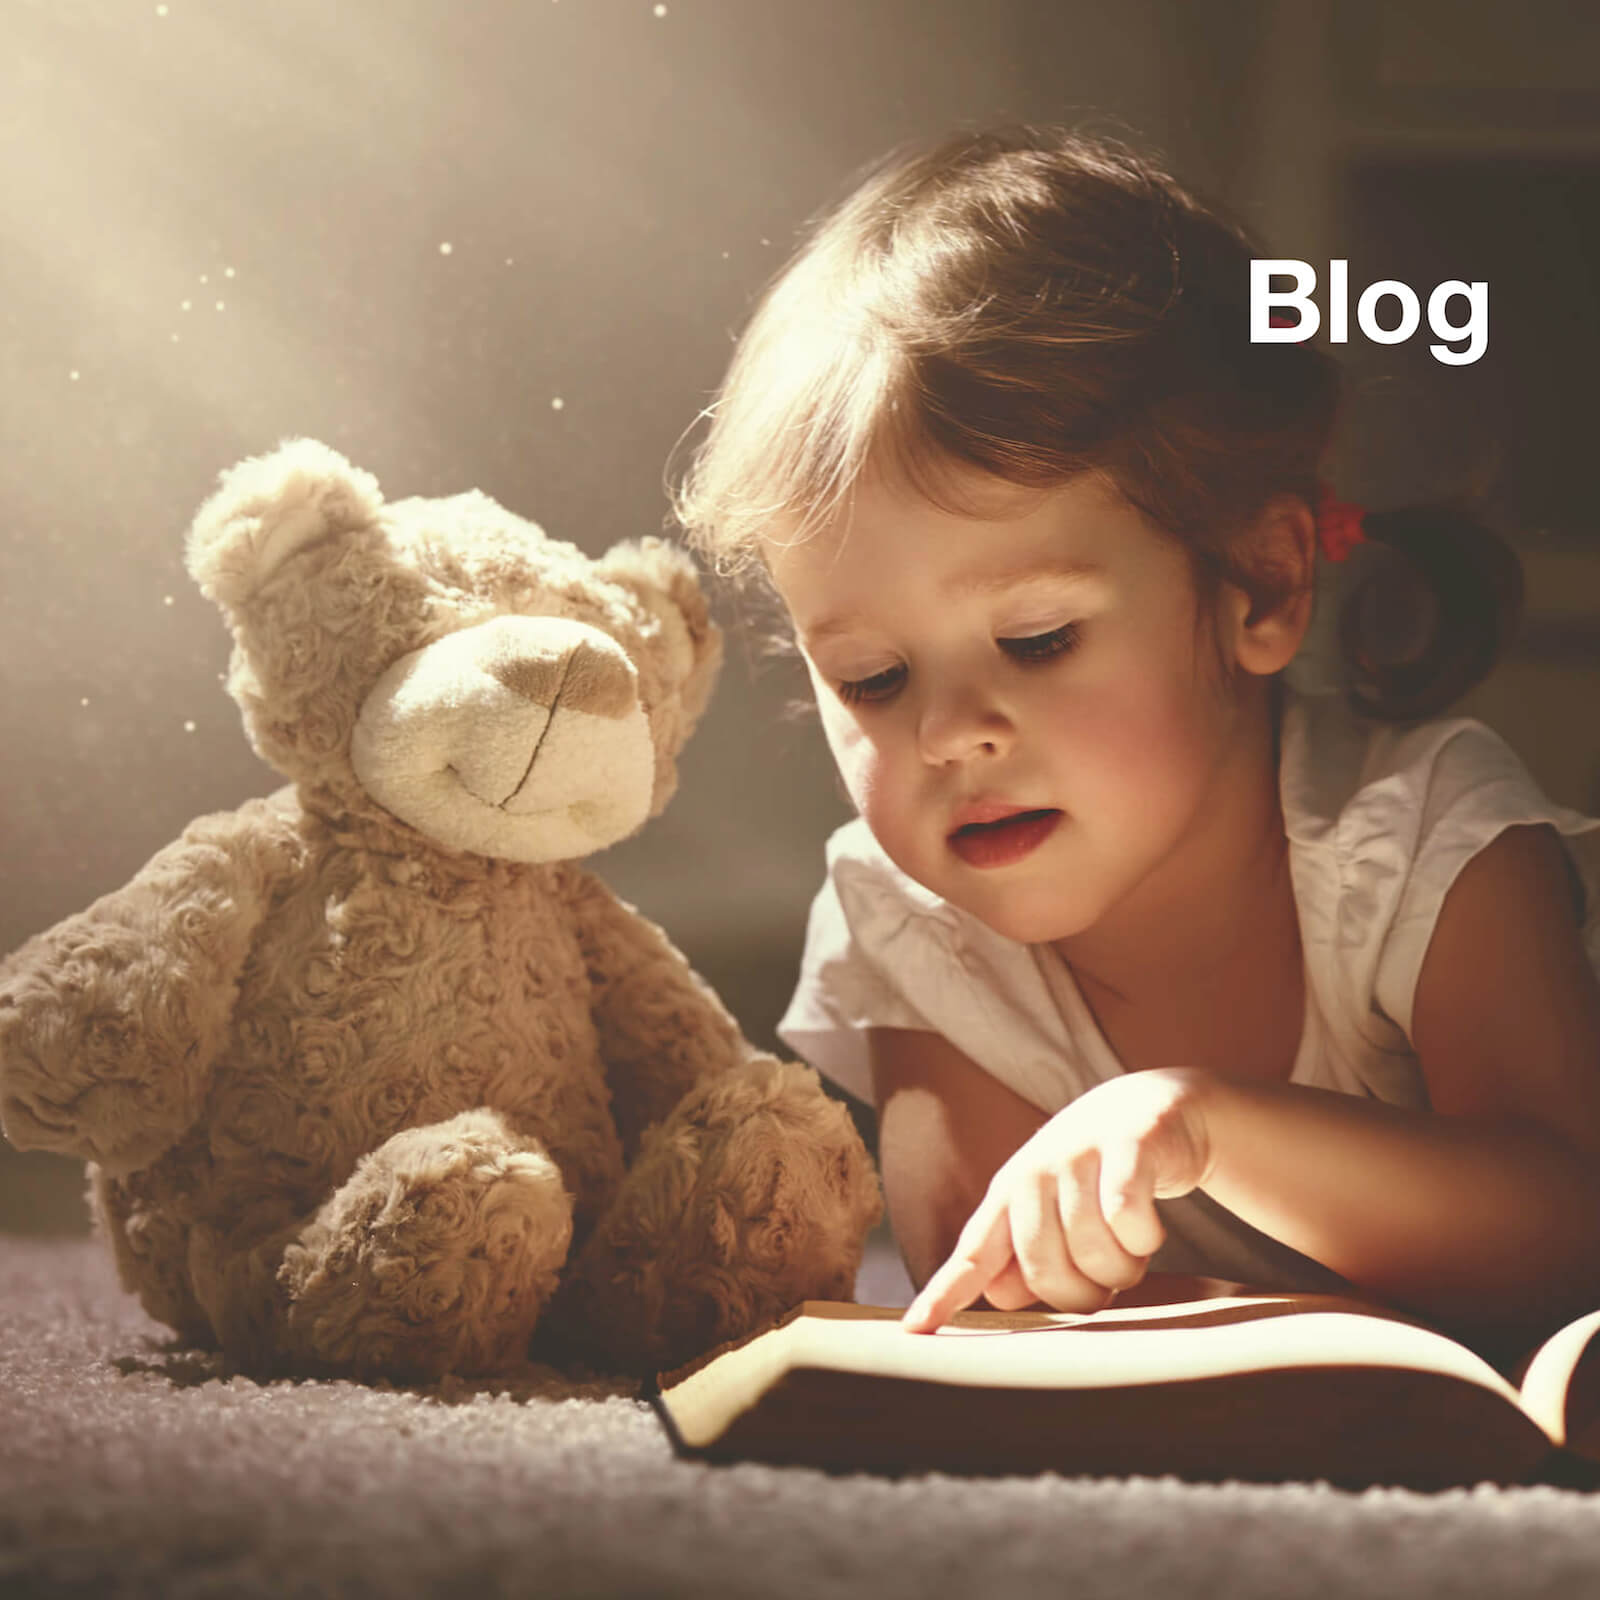 N4YK Blog for nannies and private staff with advice and tips for nannies, maternity nurses and other household staff.